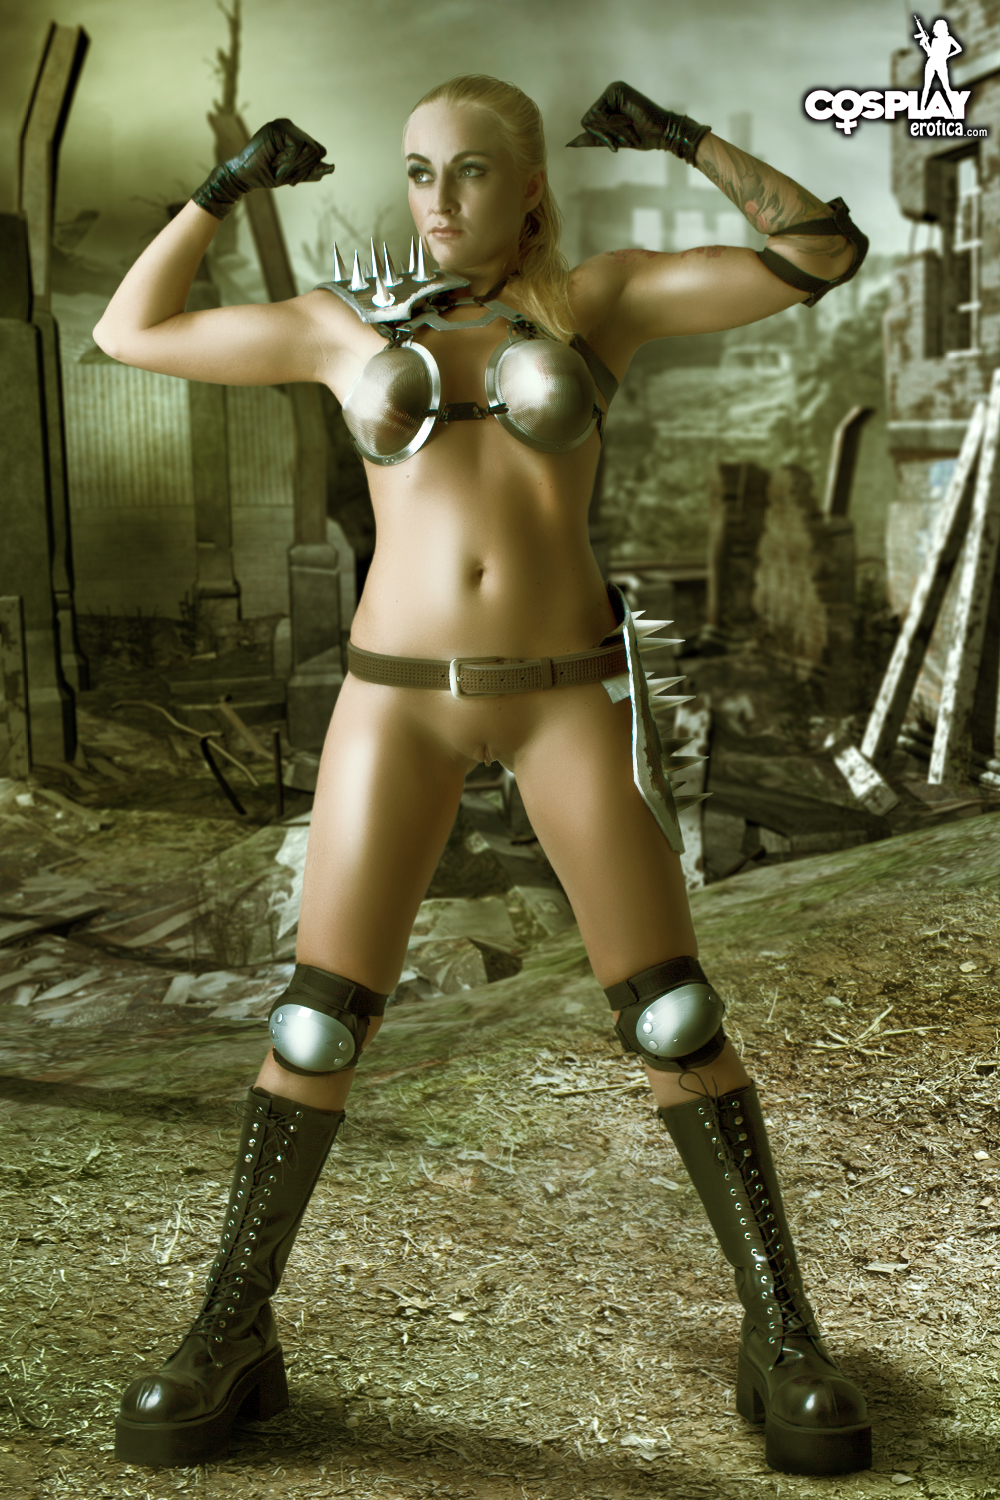 Nude raider cosplay sexual tube